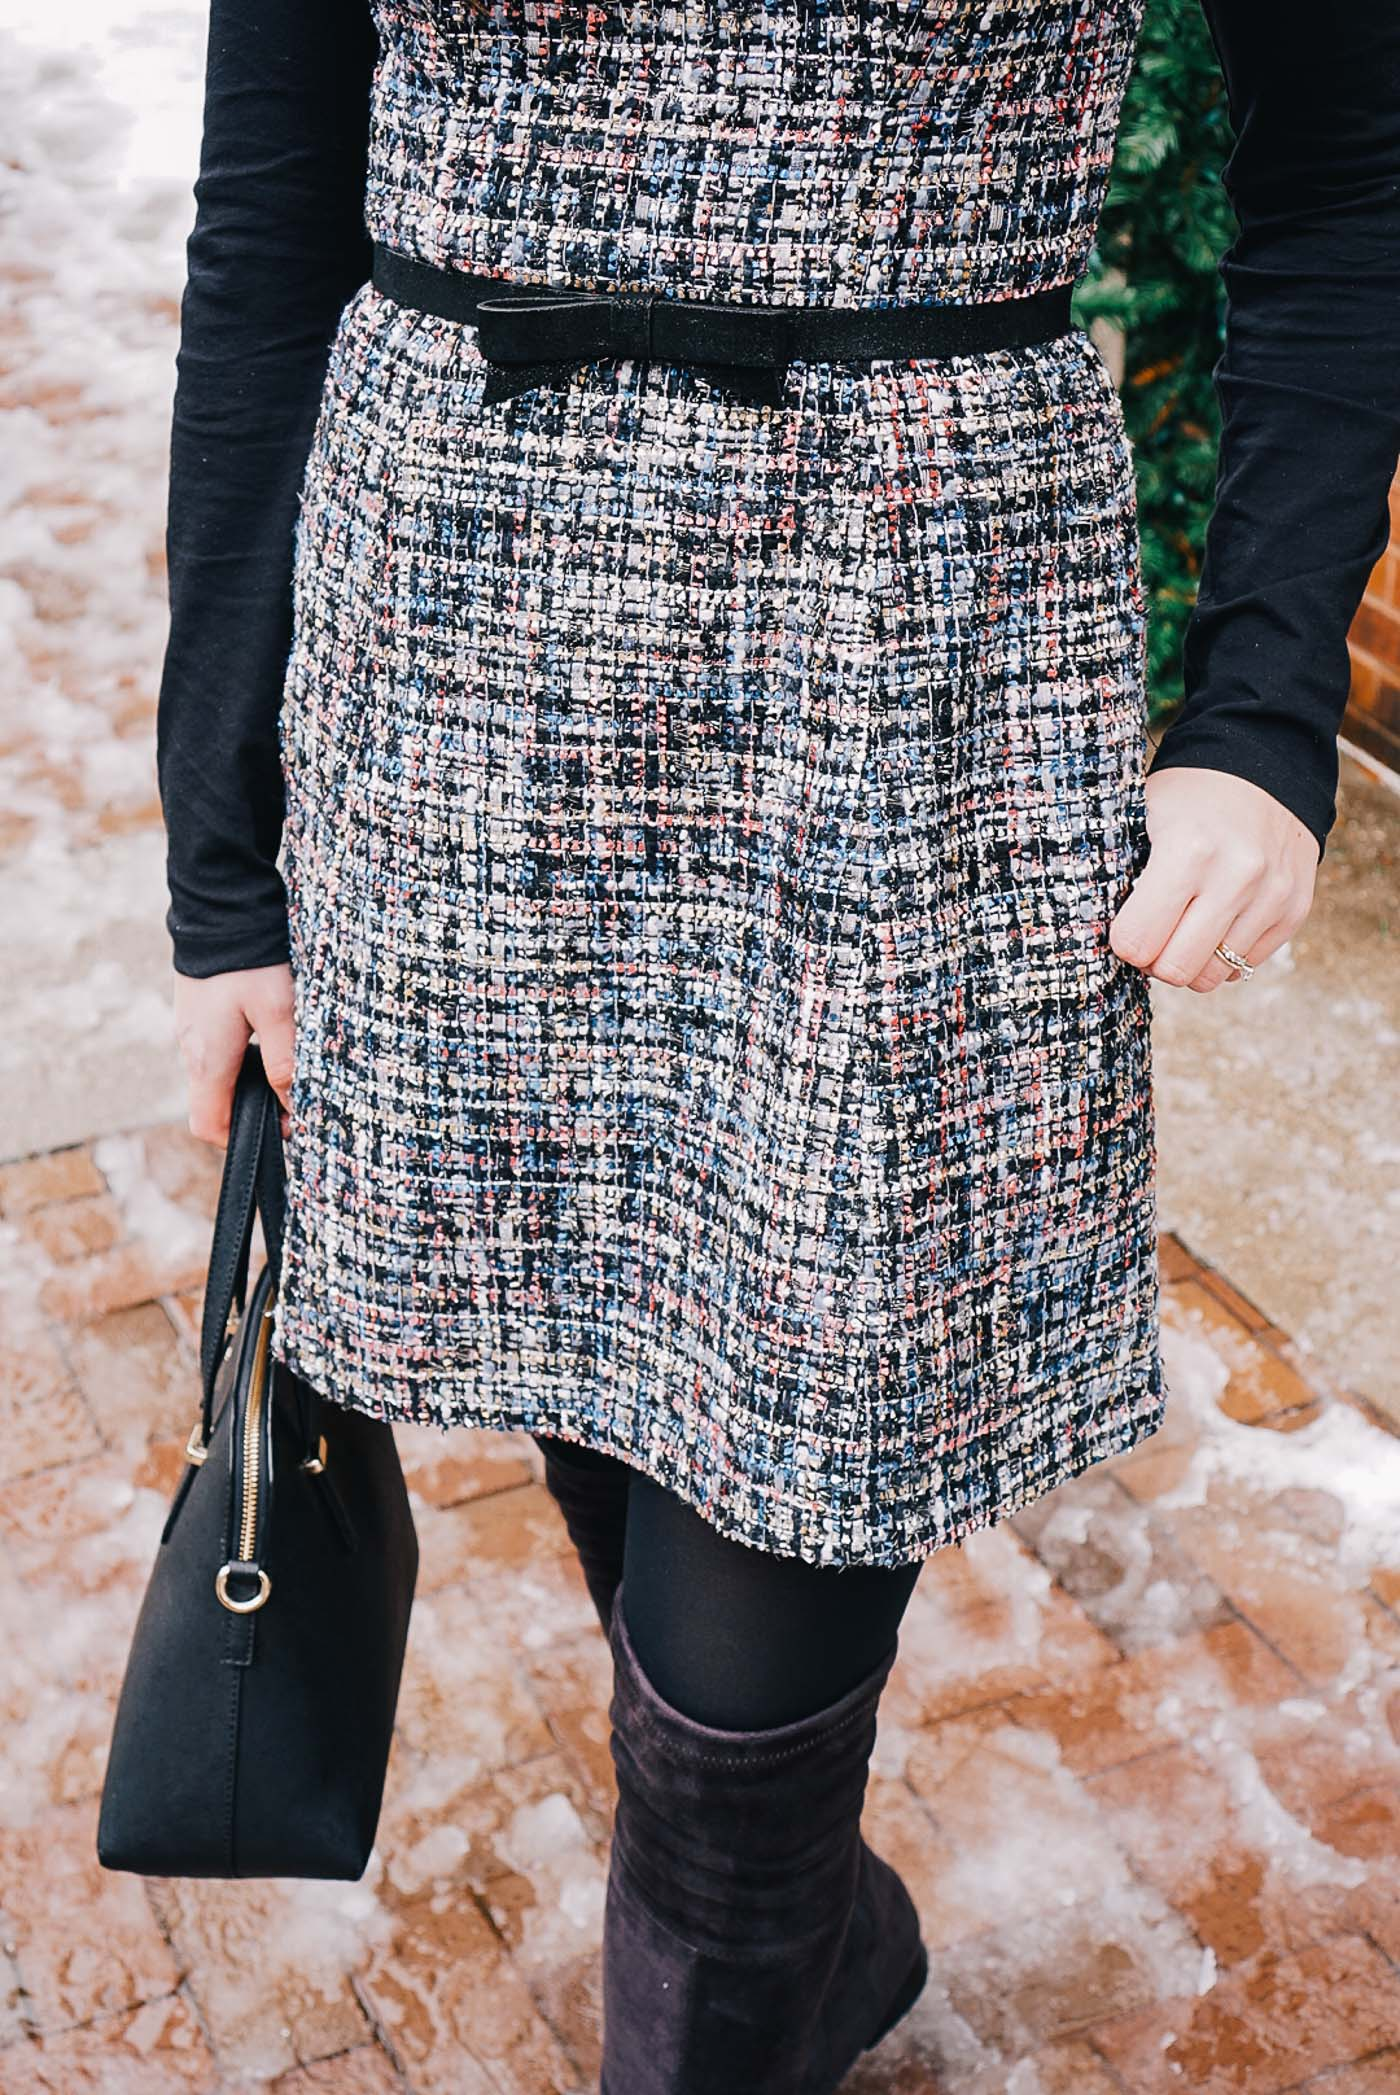 A December bucket list by Lauren Cermak of the Southern lifestyle blog, Going for Grace. Featuring a Gal Meets Glam tweed dress.